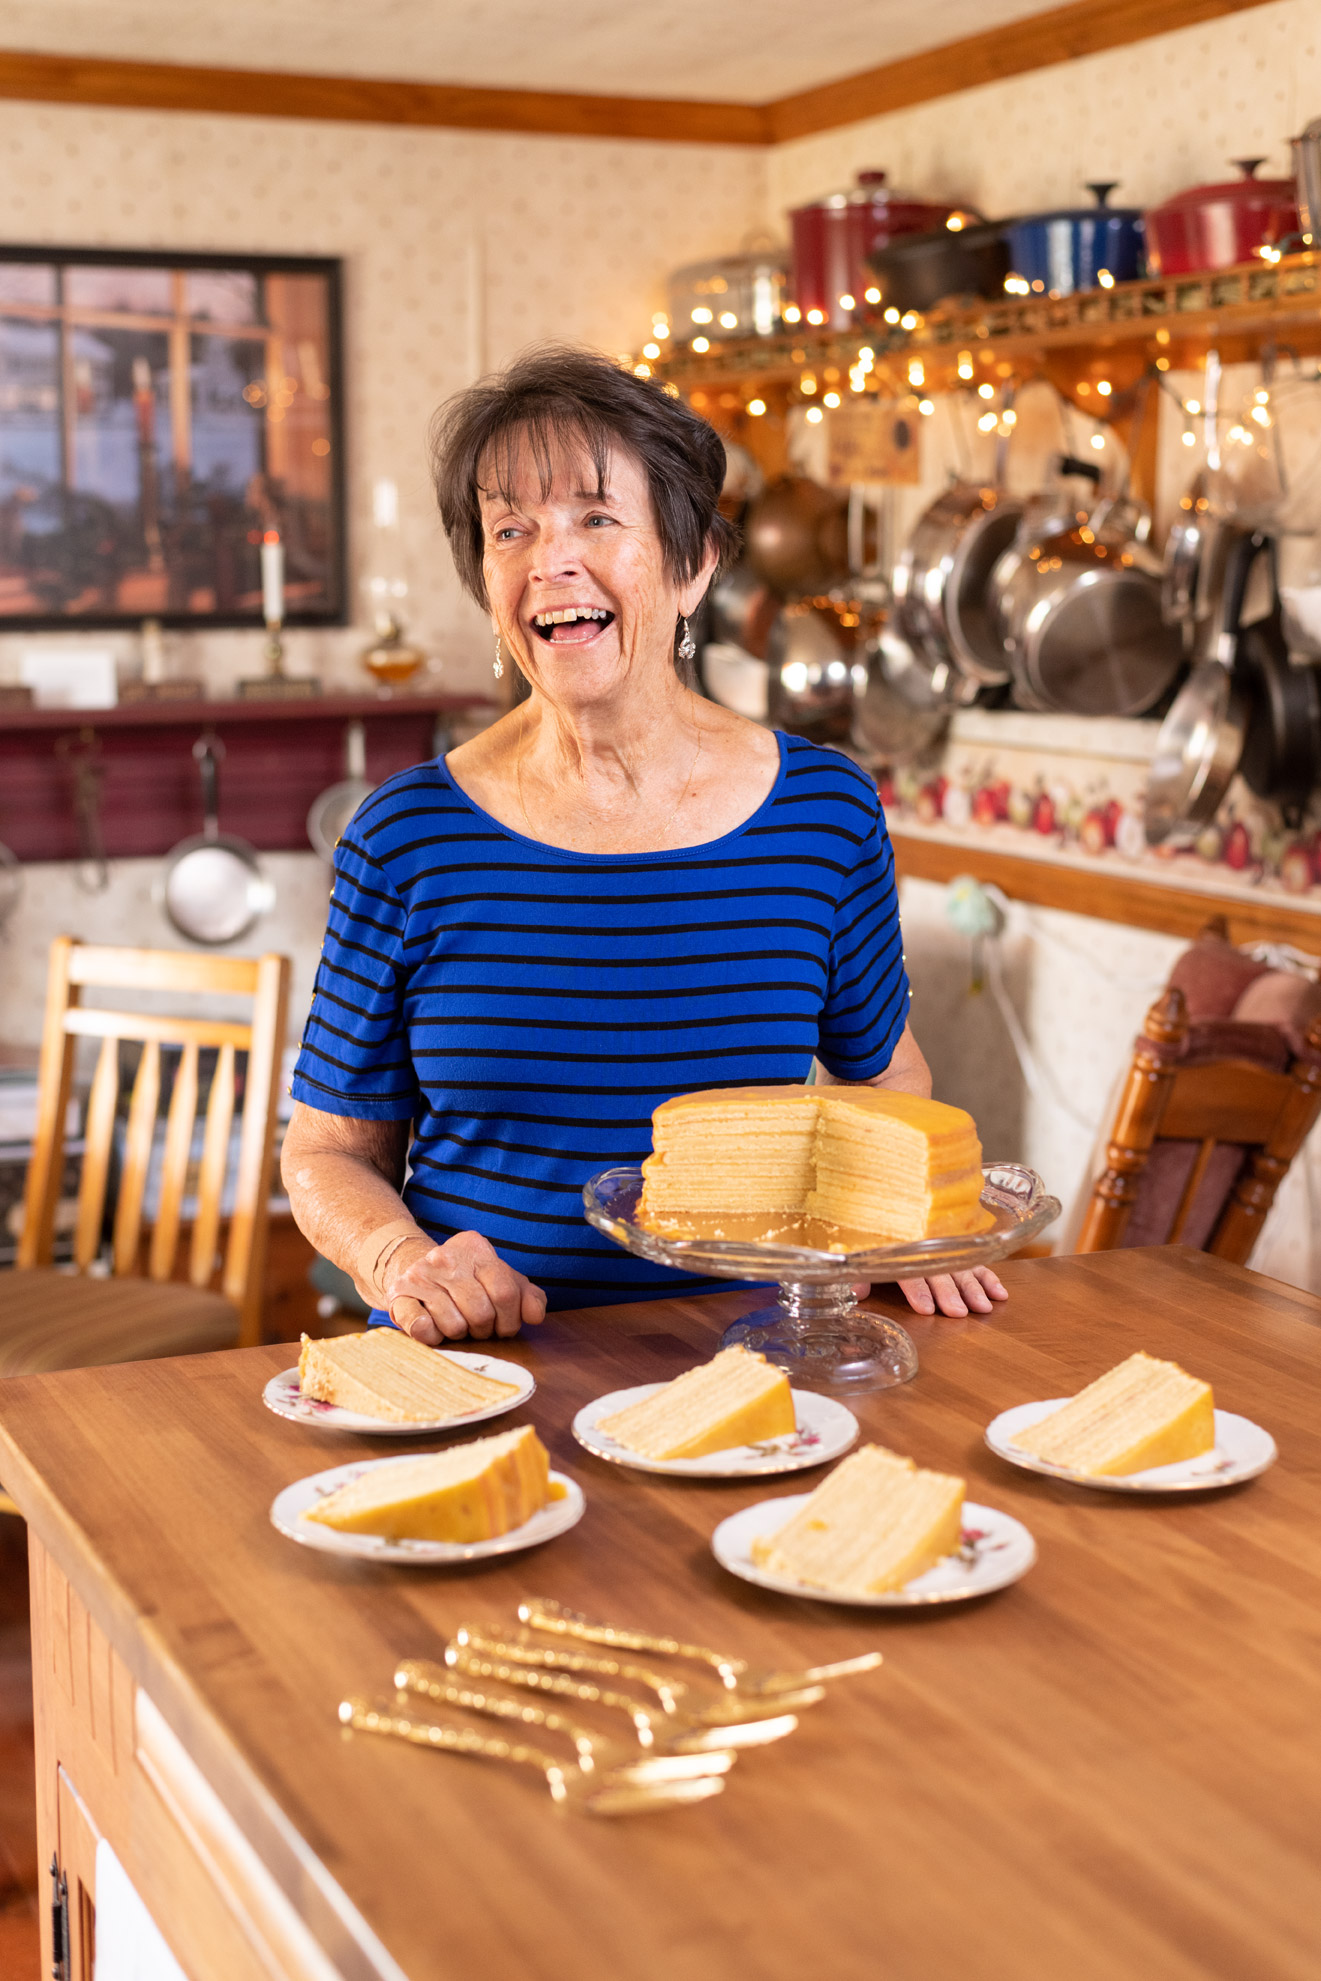 A woman laughing with a Smith Island cake